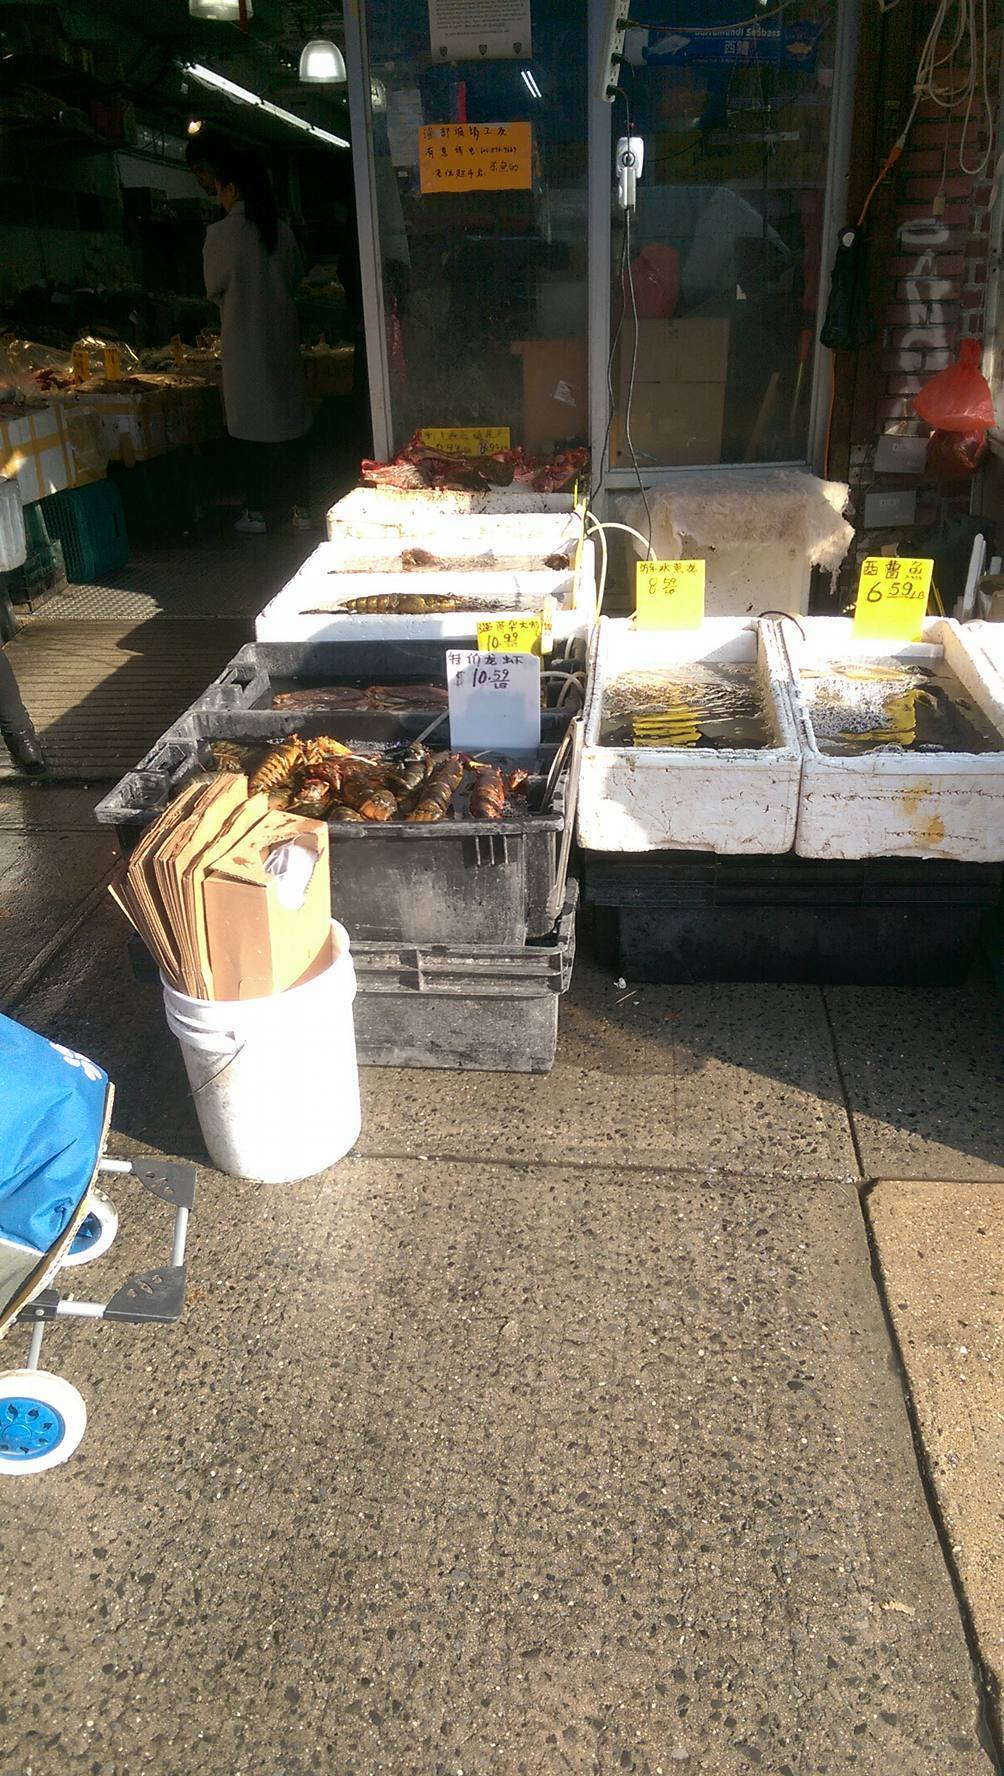 Fish Market on 8th Ave